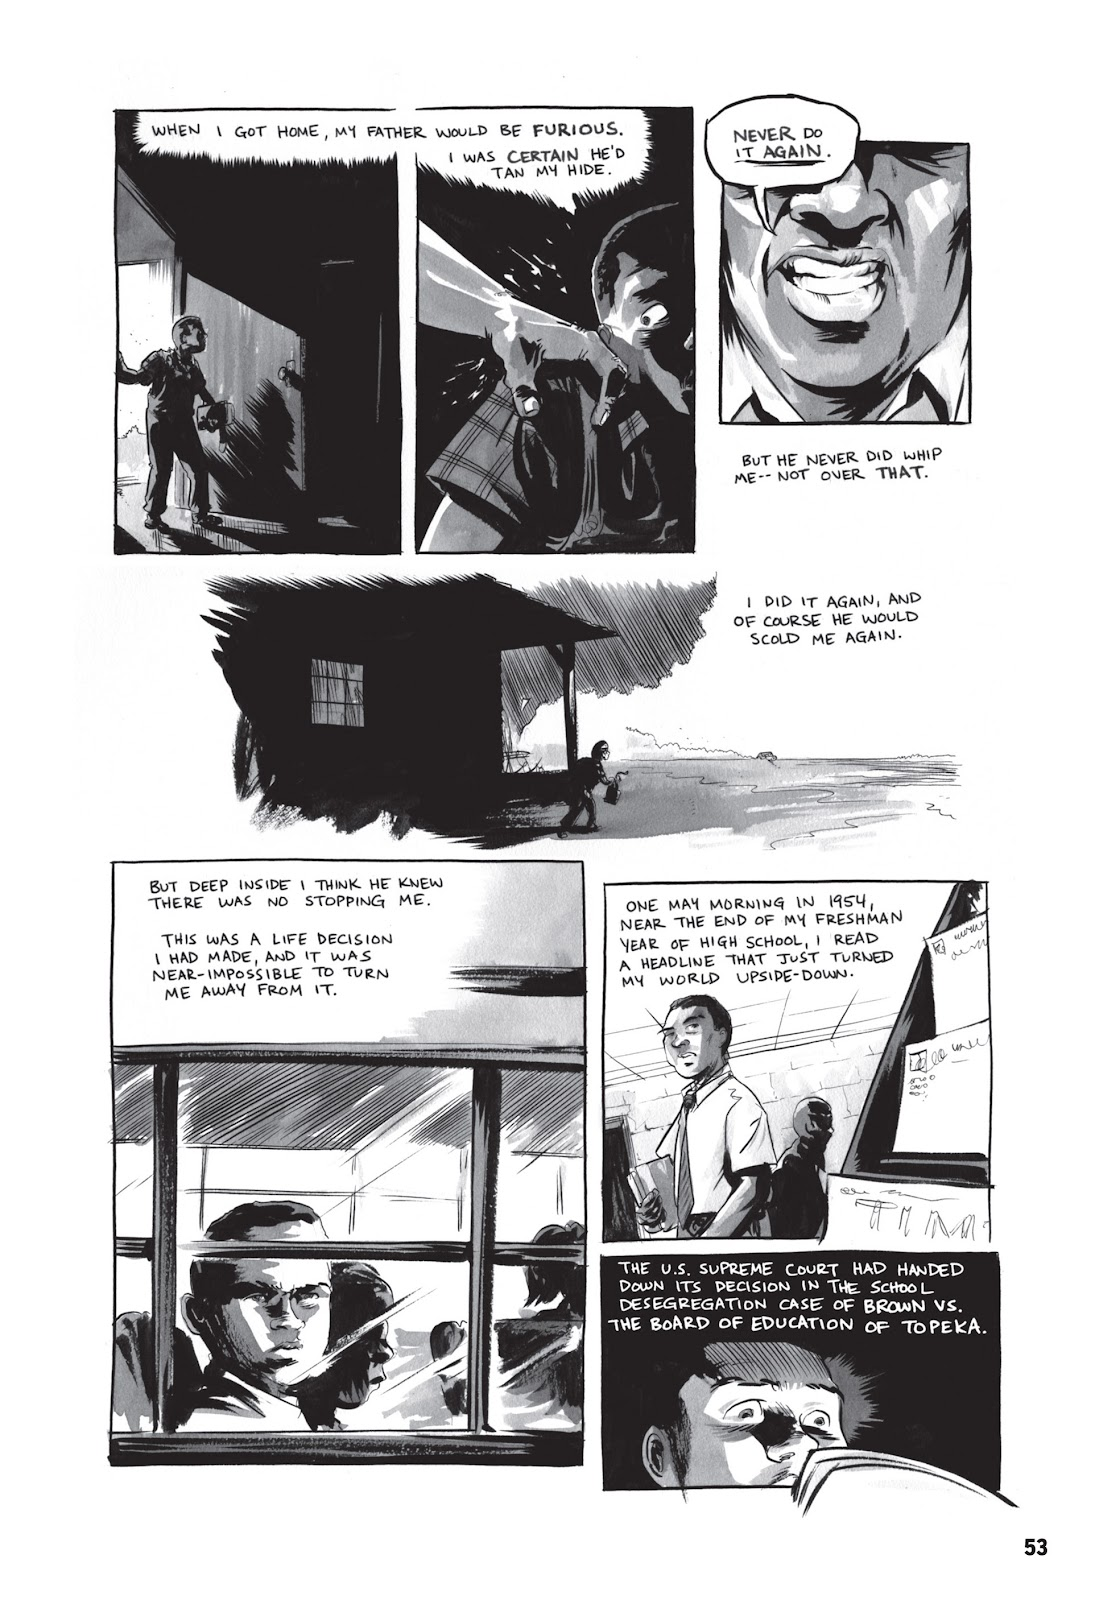 March 1 Page 50